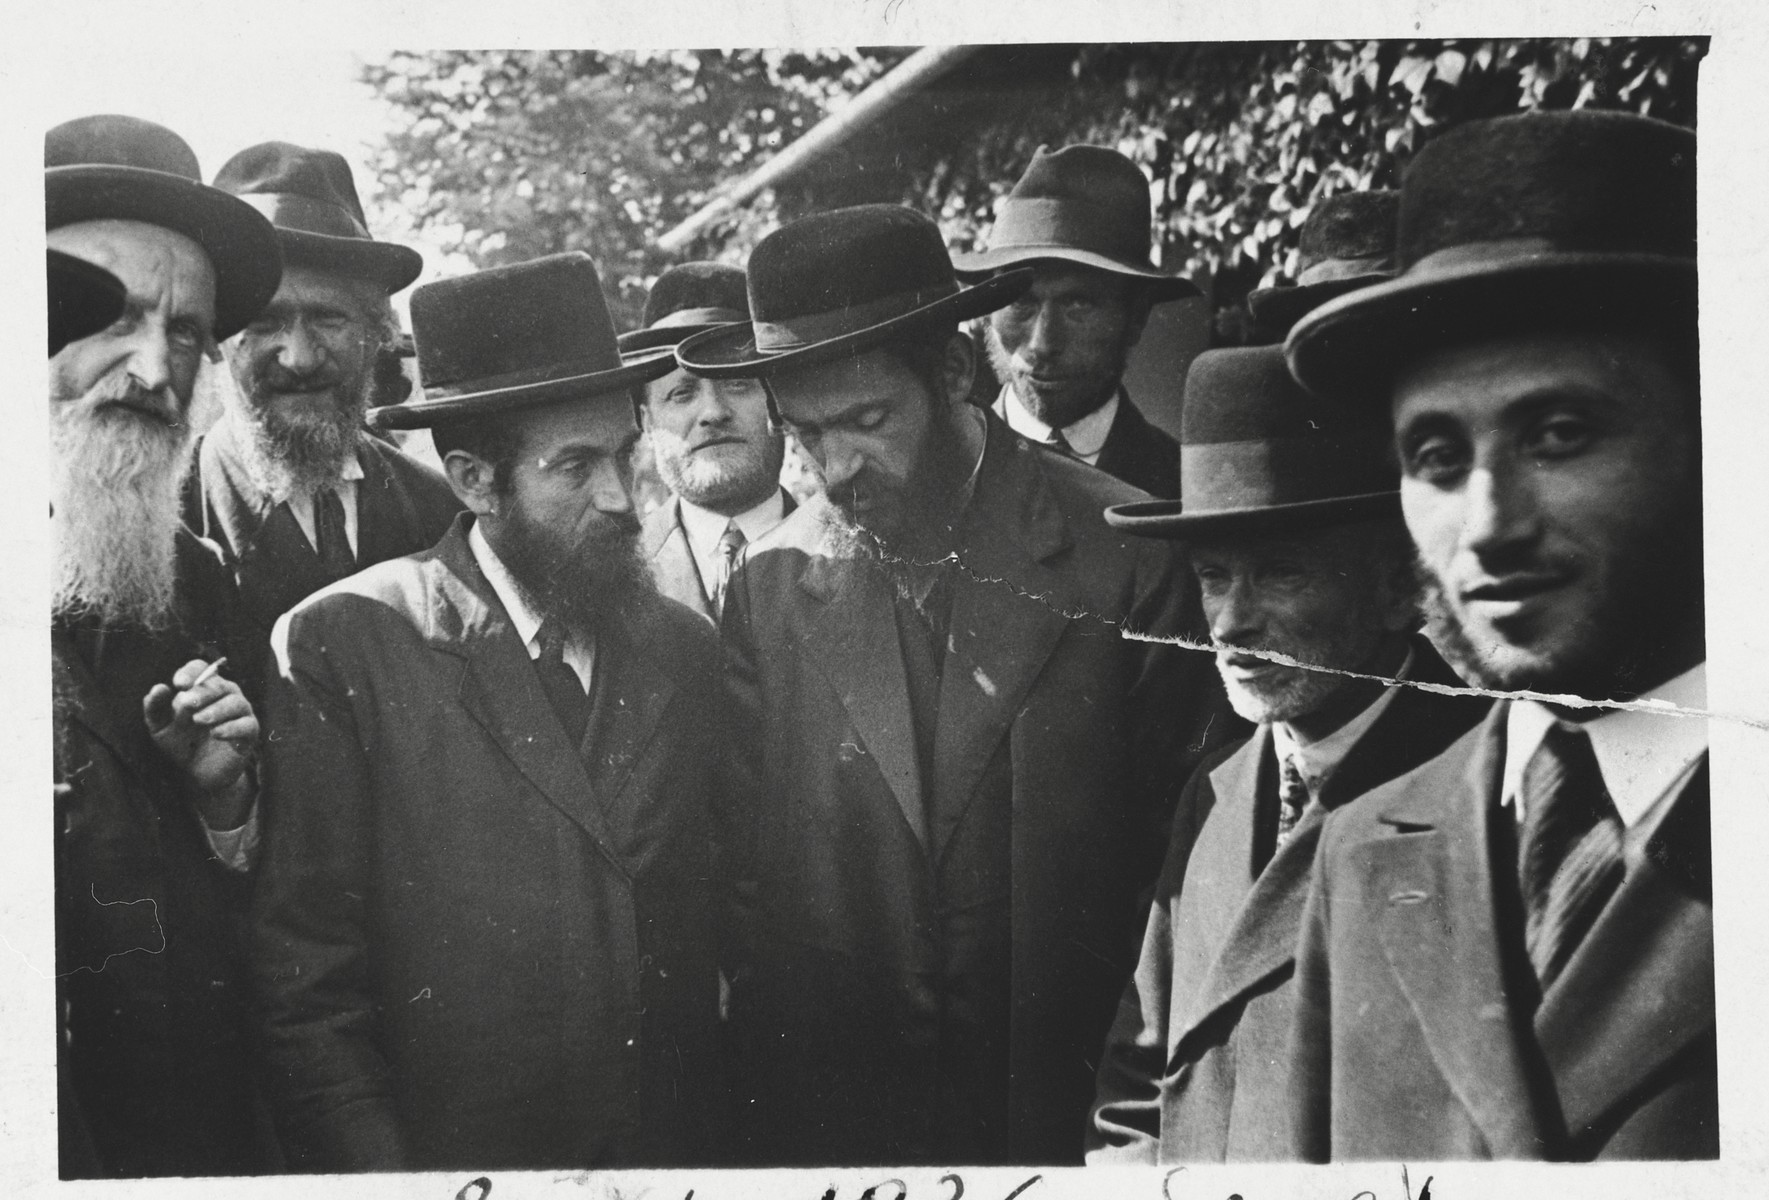 A group of religious Jewish men at a gathering in Sanok.